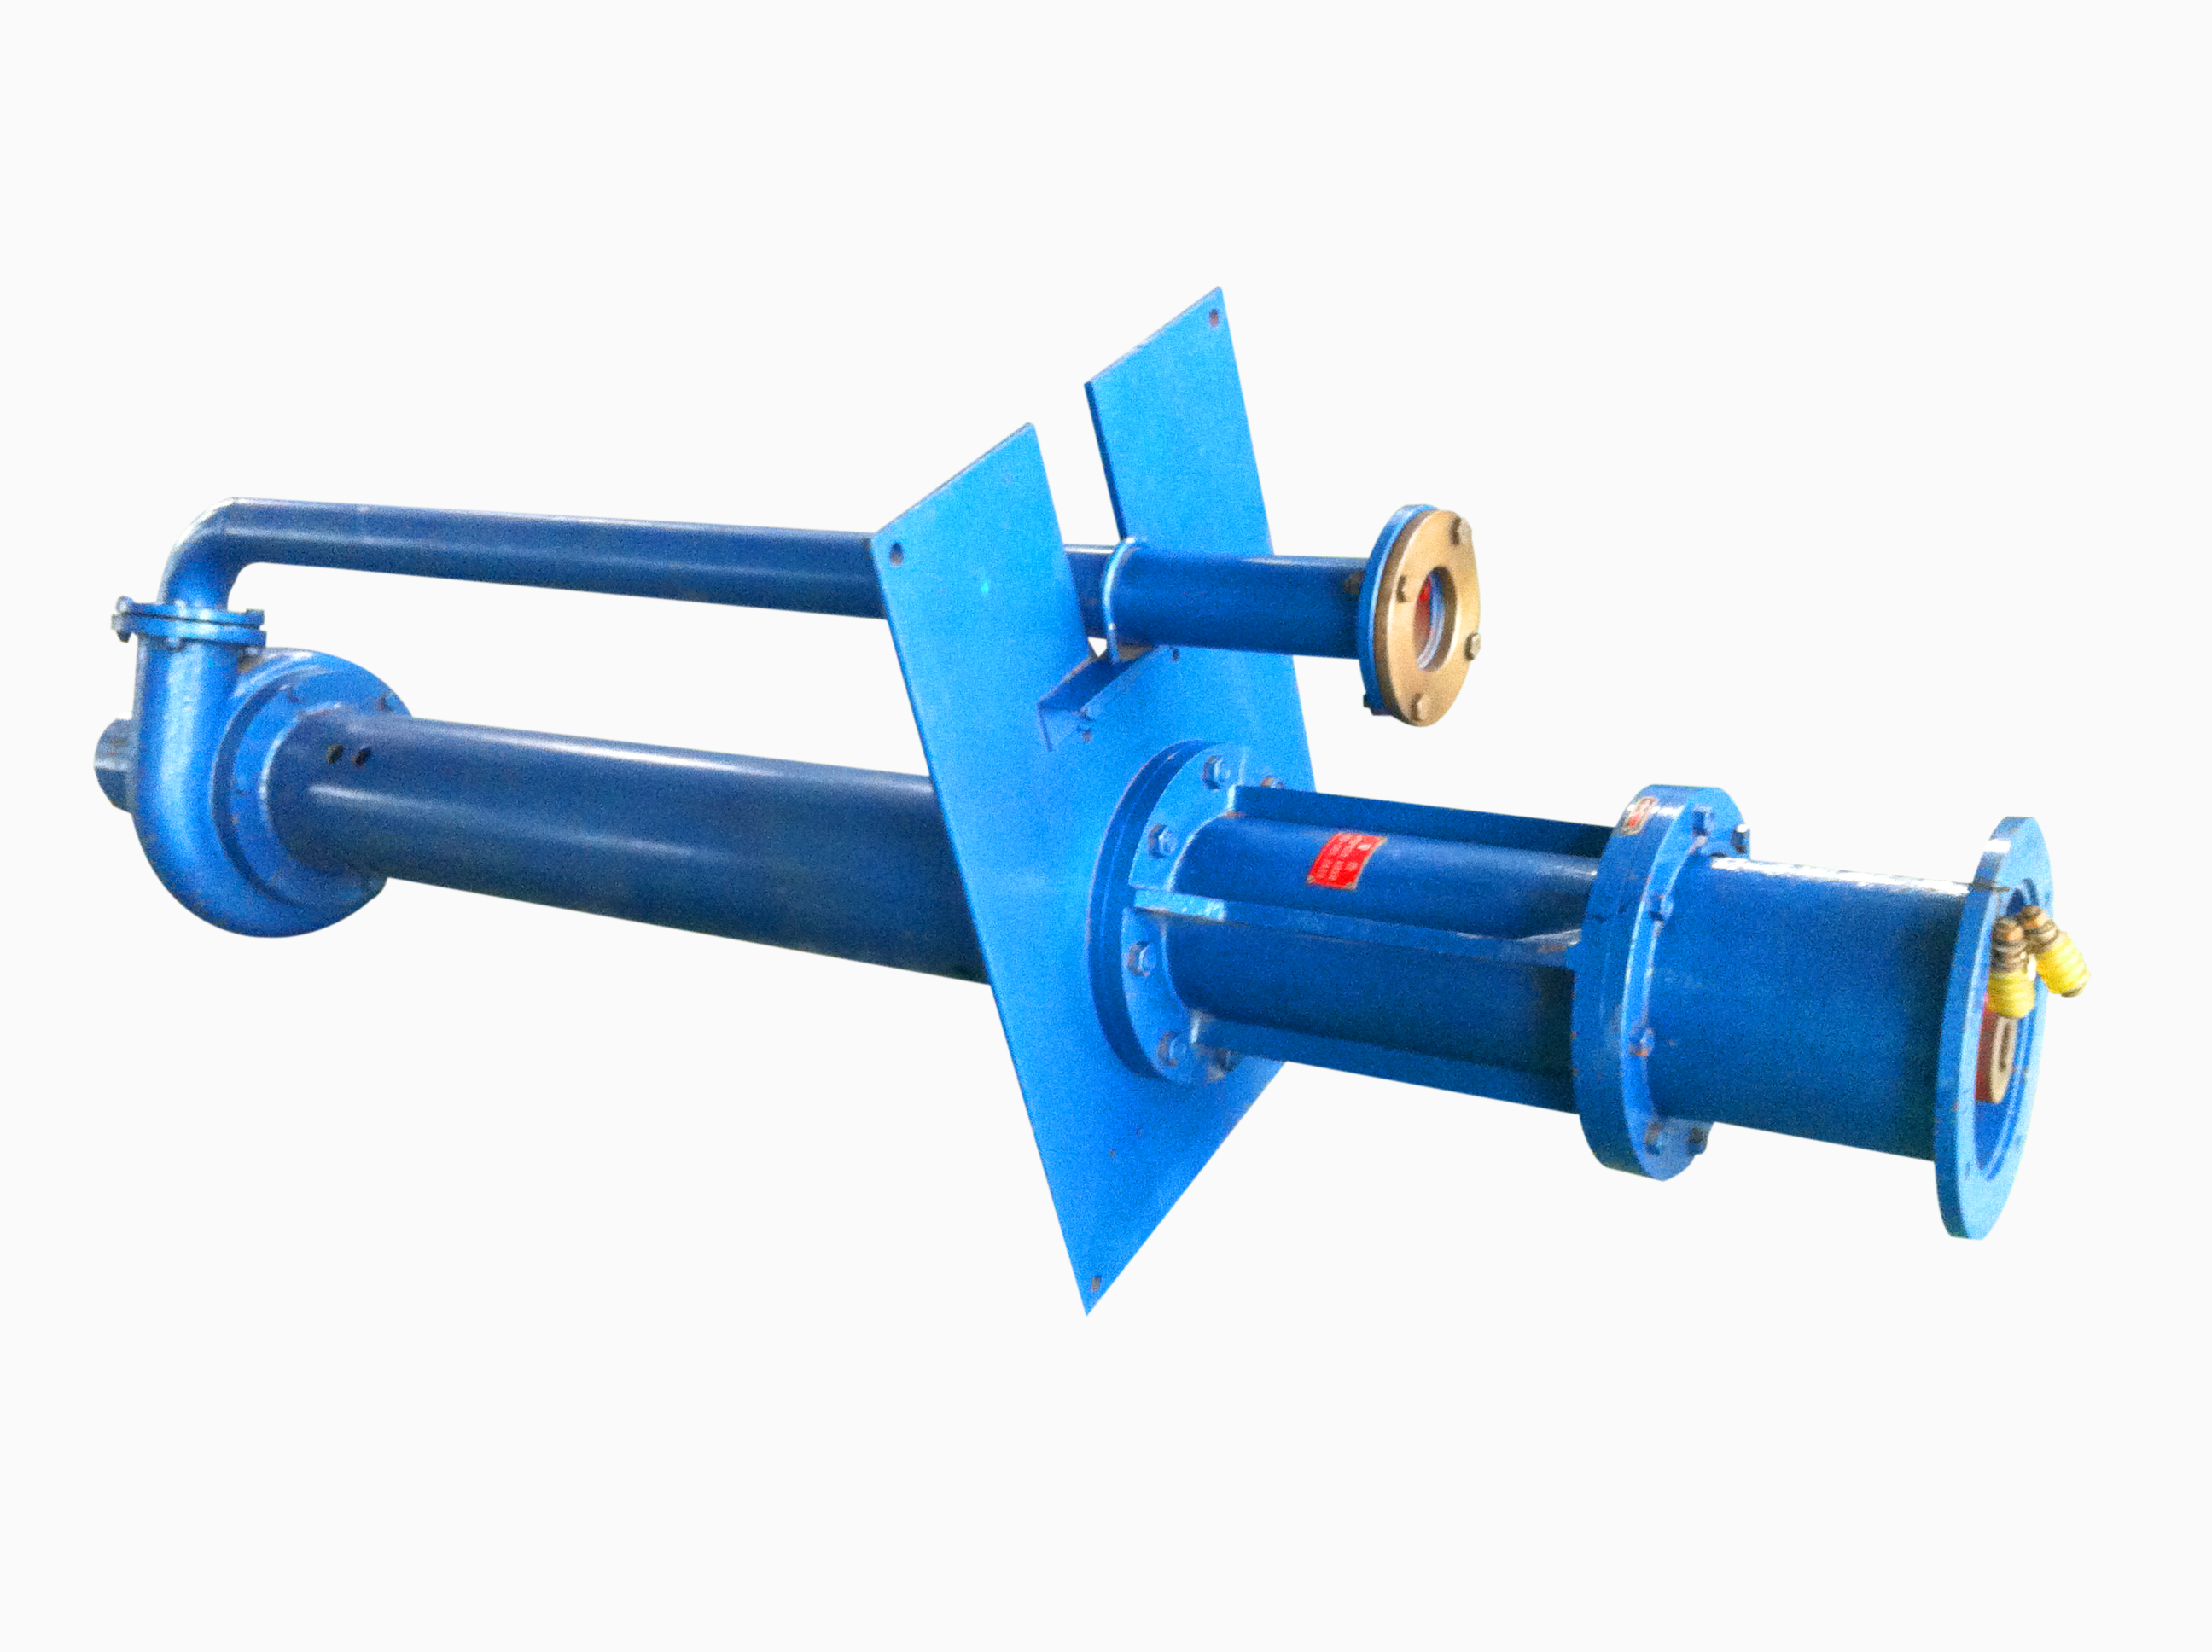 LYZ series slurry pump